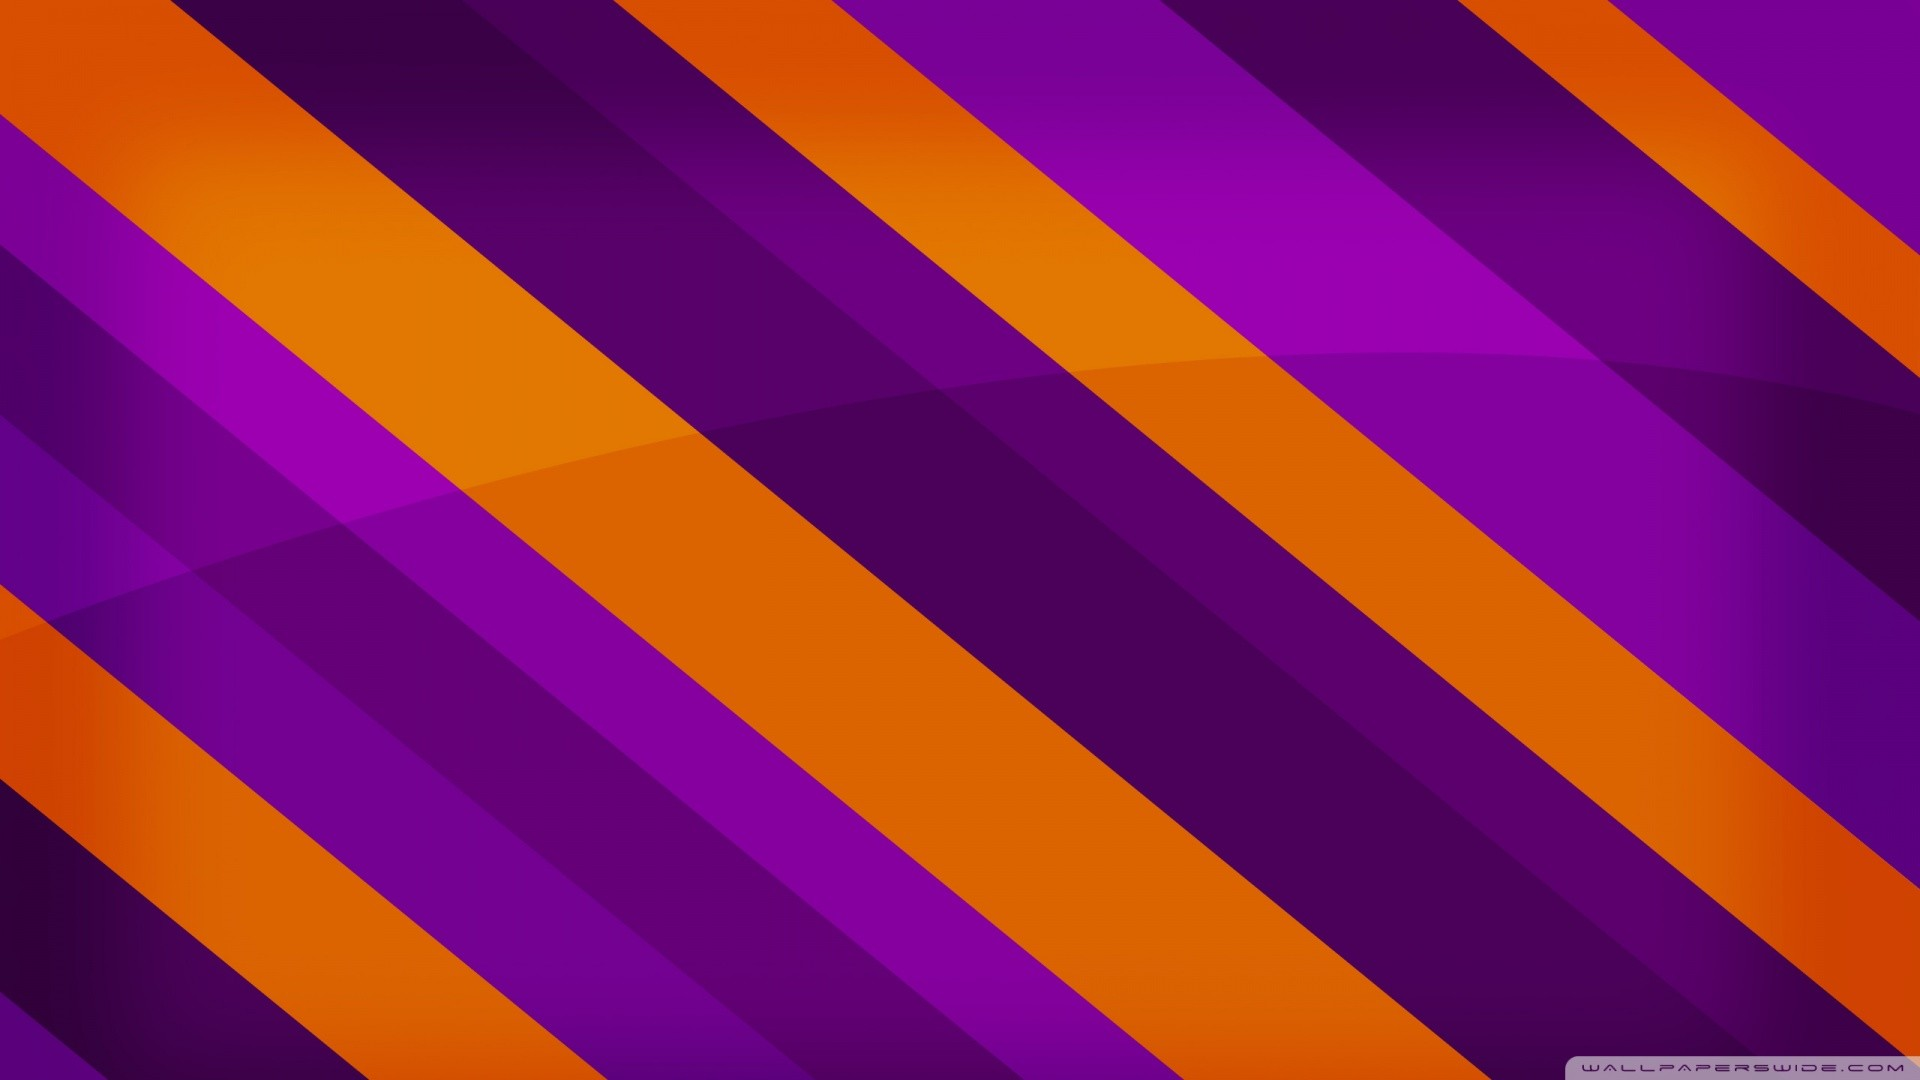 Purple and Orange Wallpaper 80 images